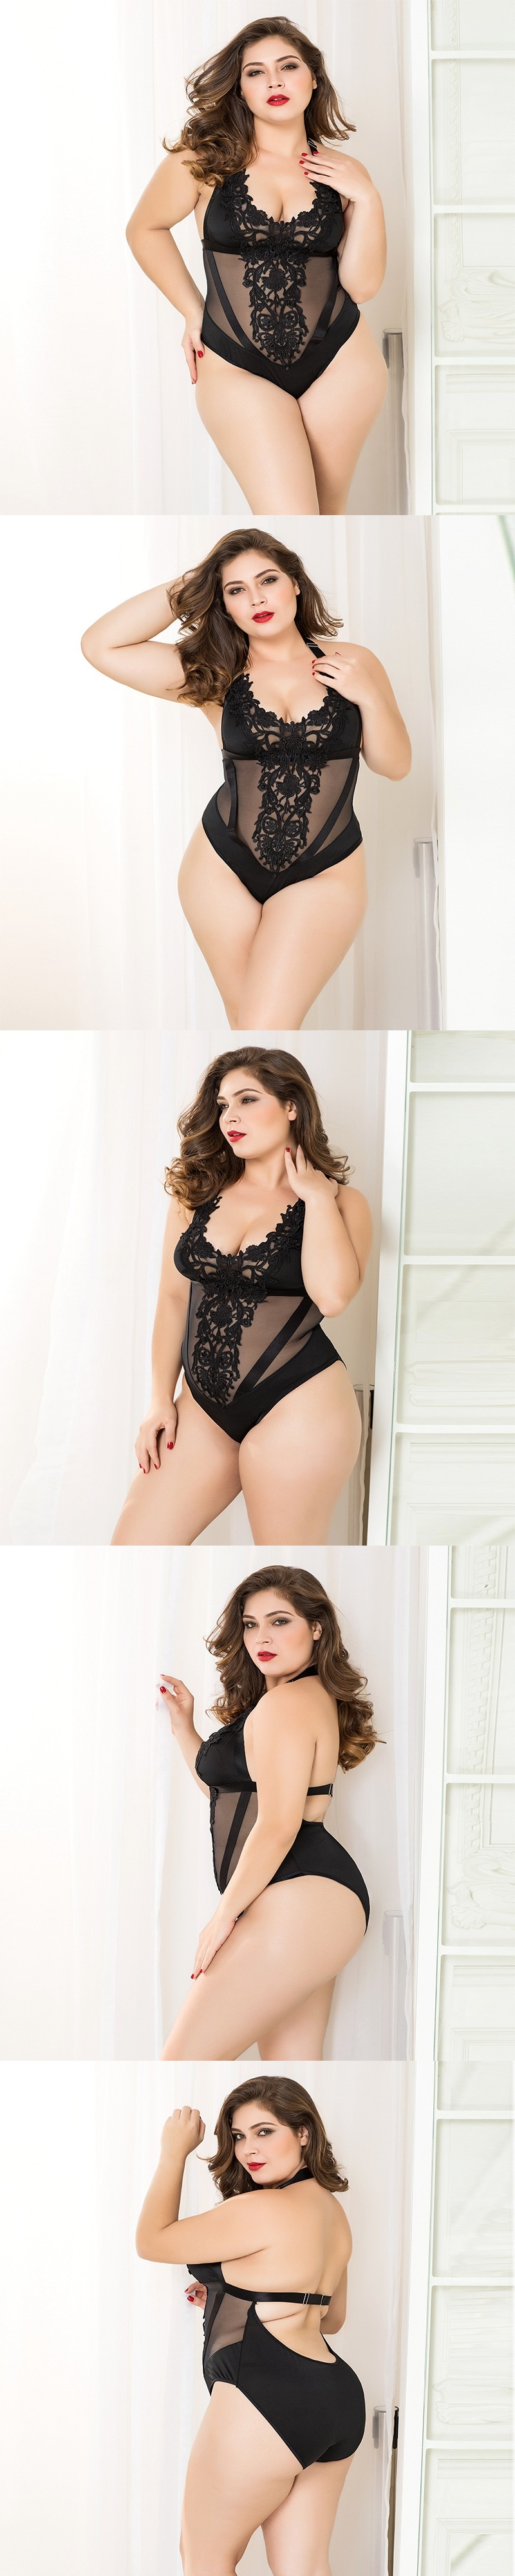 adult loving|Sexy Black Lace Bodysuit Plus Size